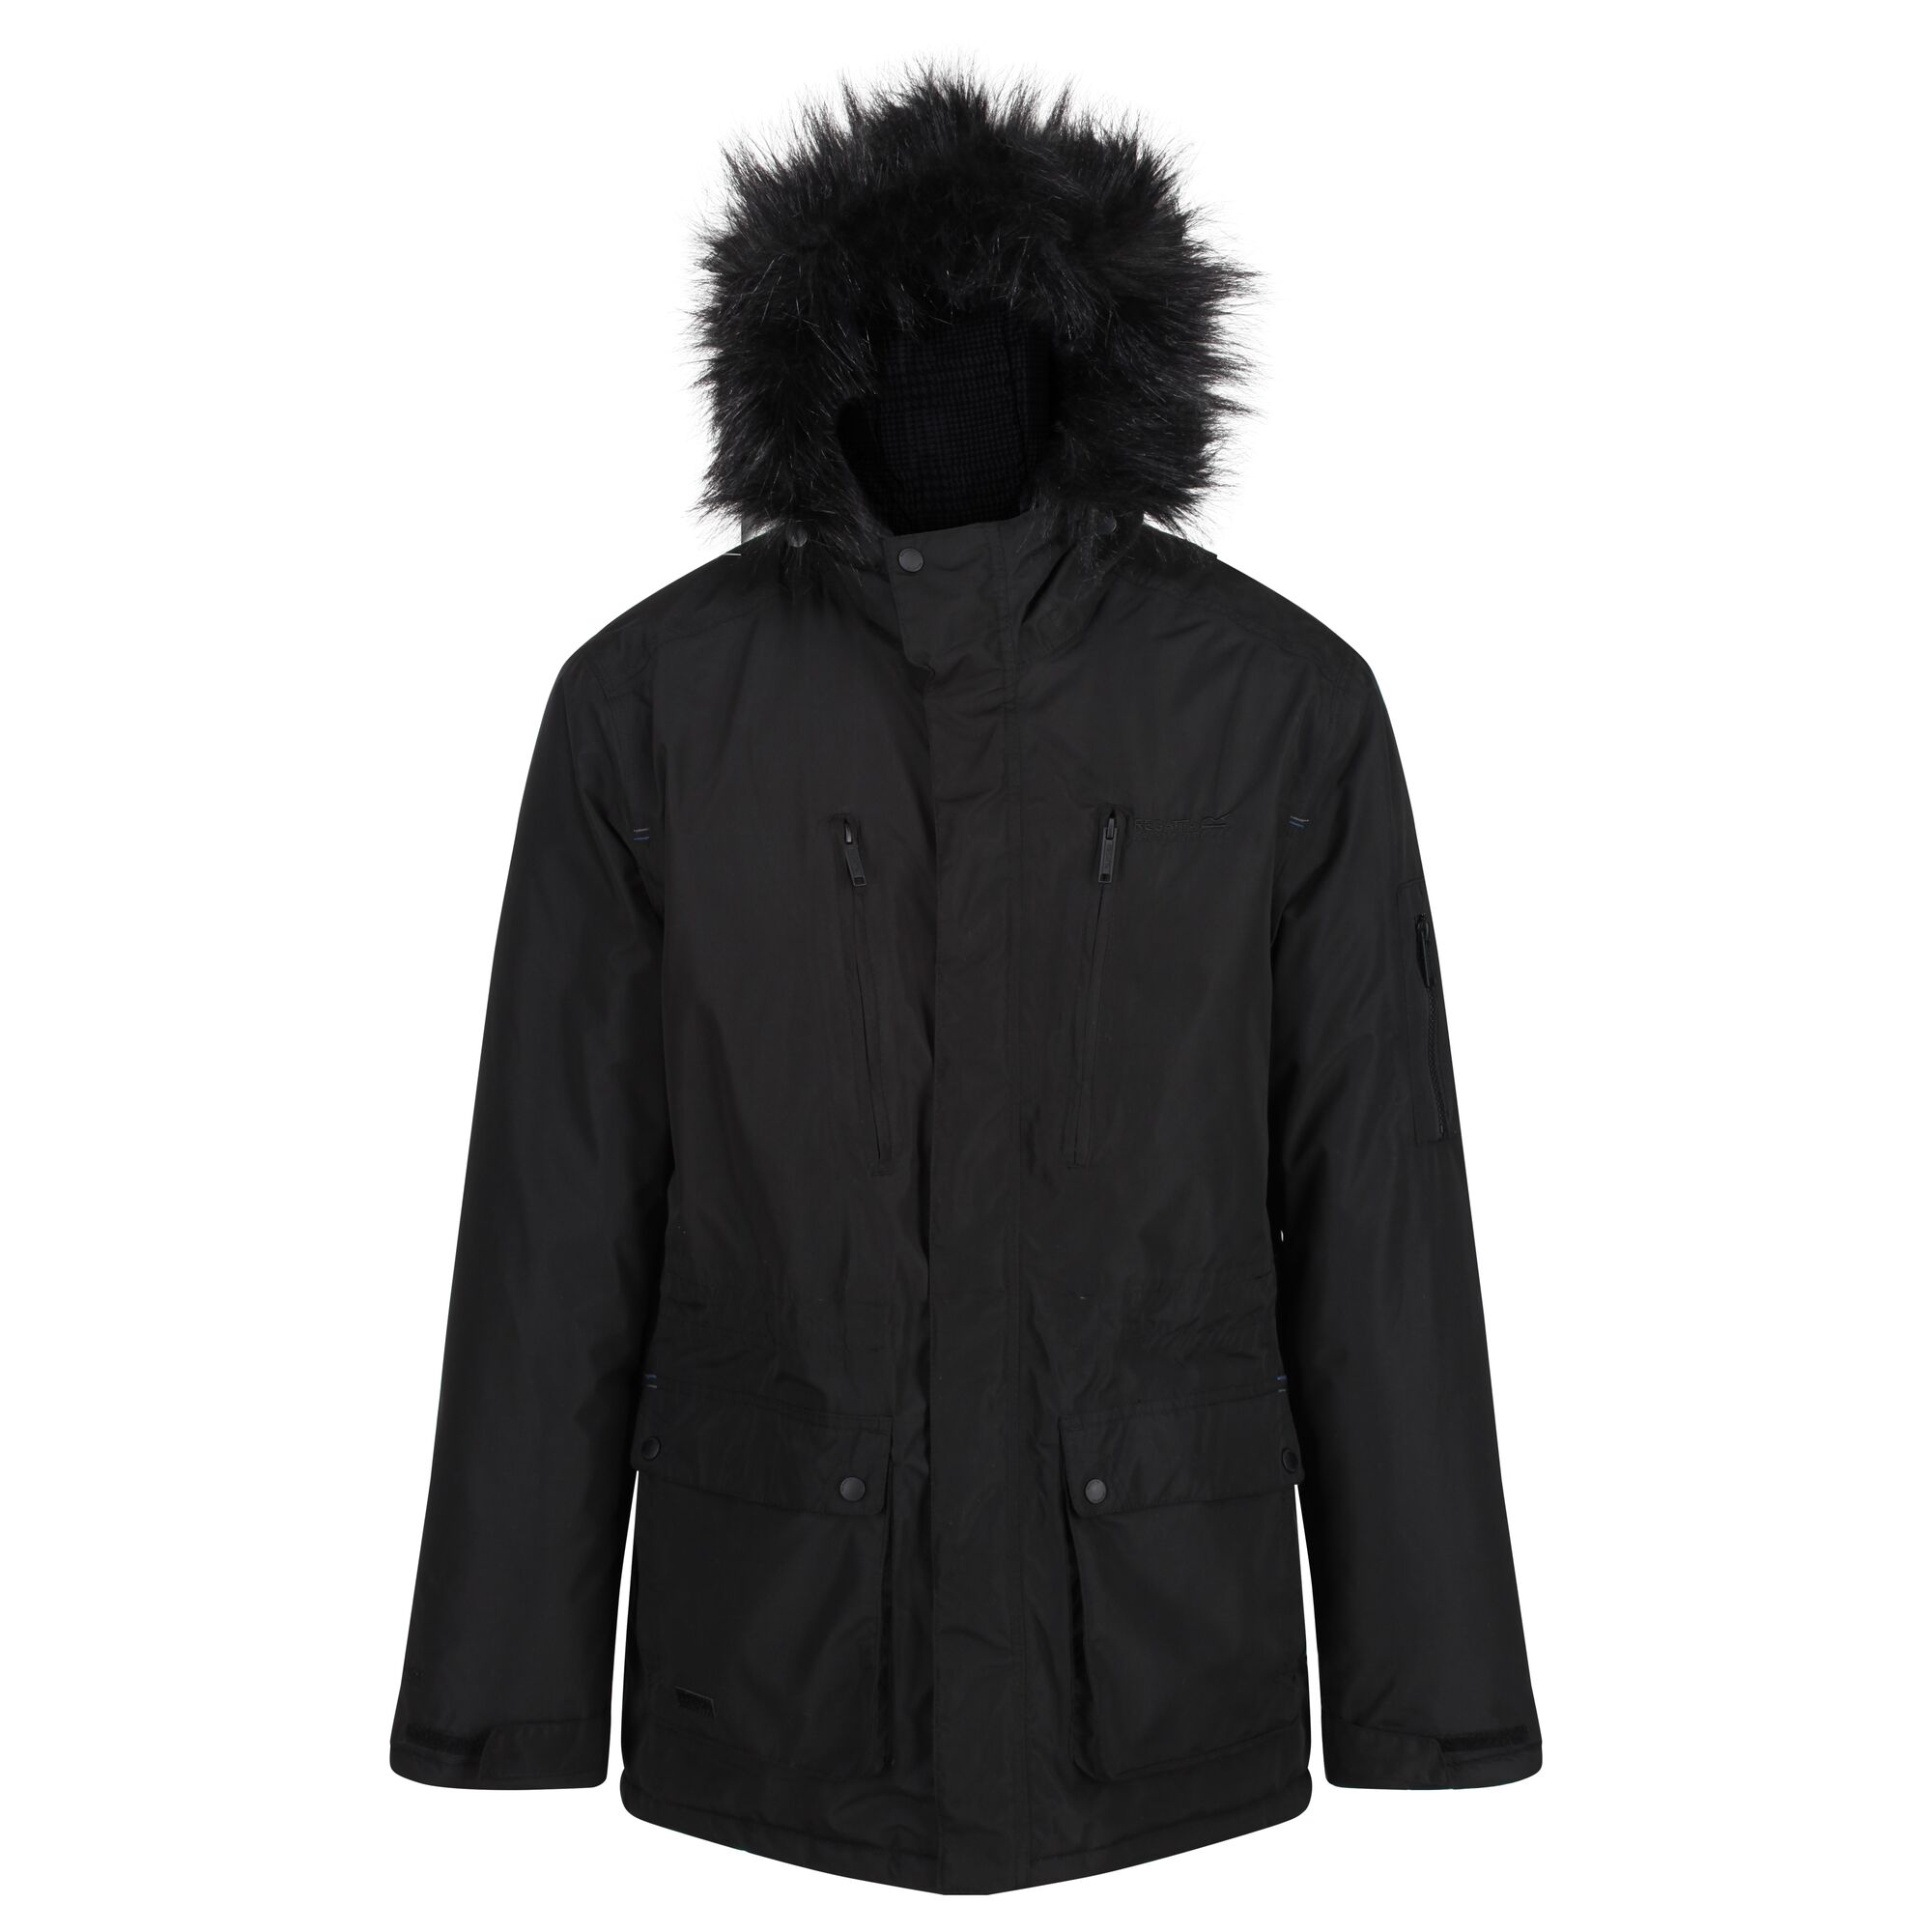 Men's black thick jacket with fur hood.